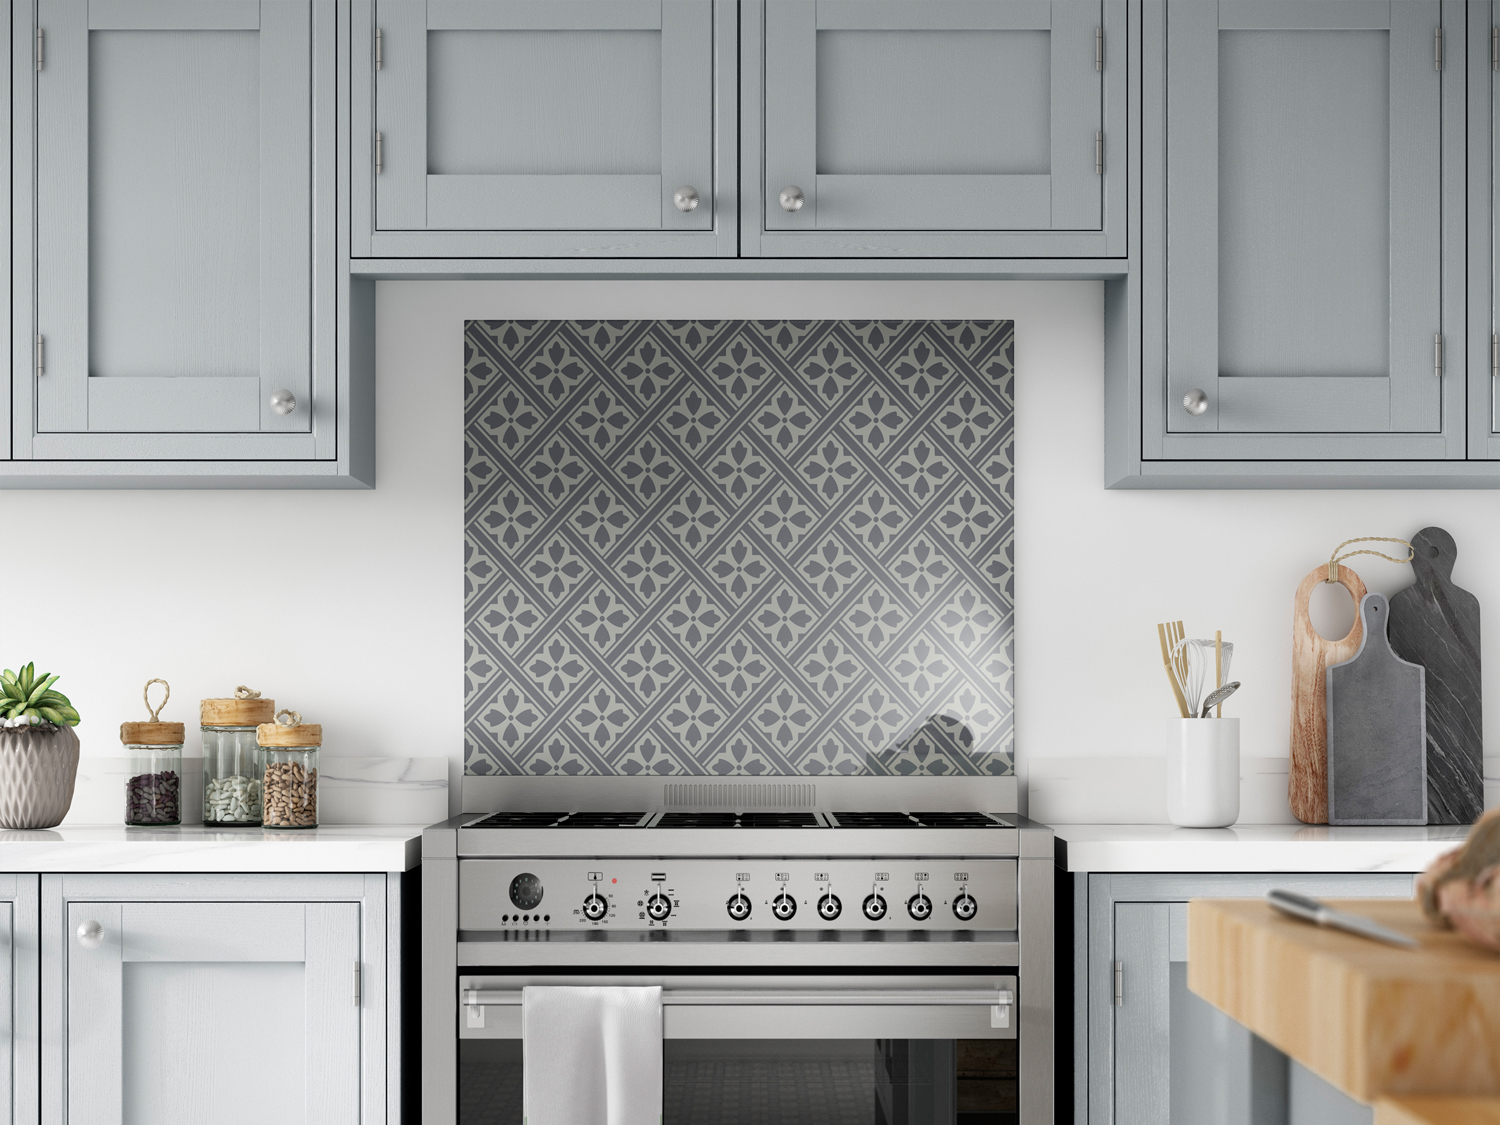 British ceramic tile introduce a contemporary laura ashley british ceramic tile introduce a contemporary laura ashley splashback collection dailygadgetfo Choice Image